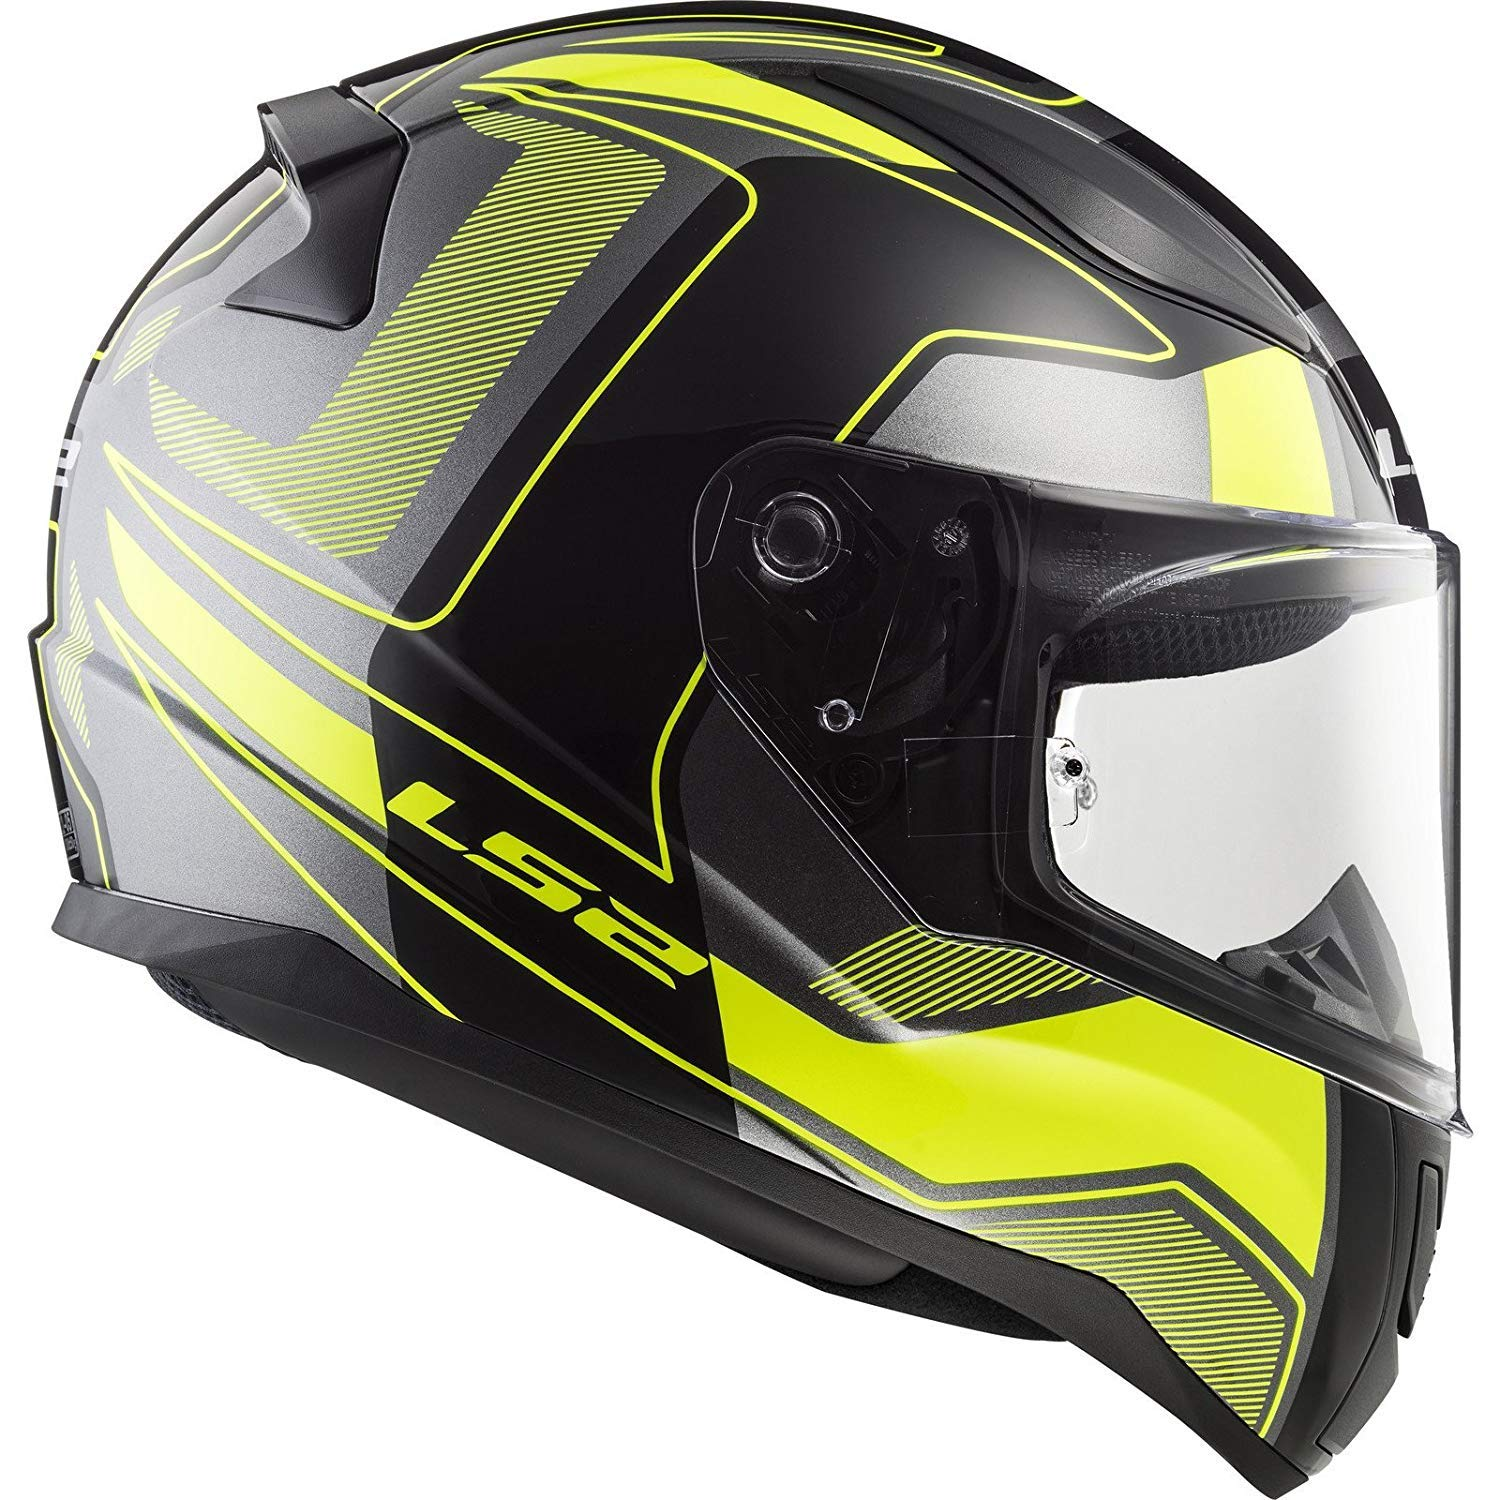 FREE DARK VISOR MOTORCYCLE LS2 FF353 RAPID CARRERA MATT BLACK HI VIZ YELLOW FULL FACE HELMET Motorbike Scooter Rider On Road Track Racing Touring Urban Sports ECE Certified Helmet